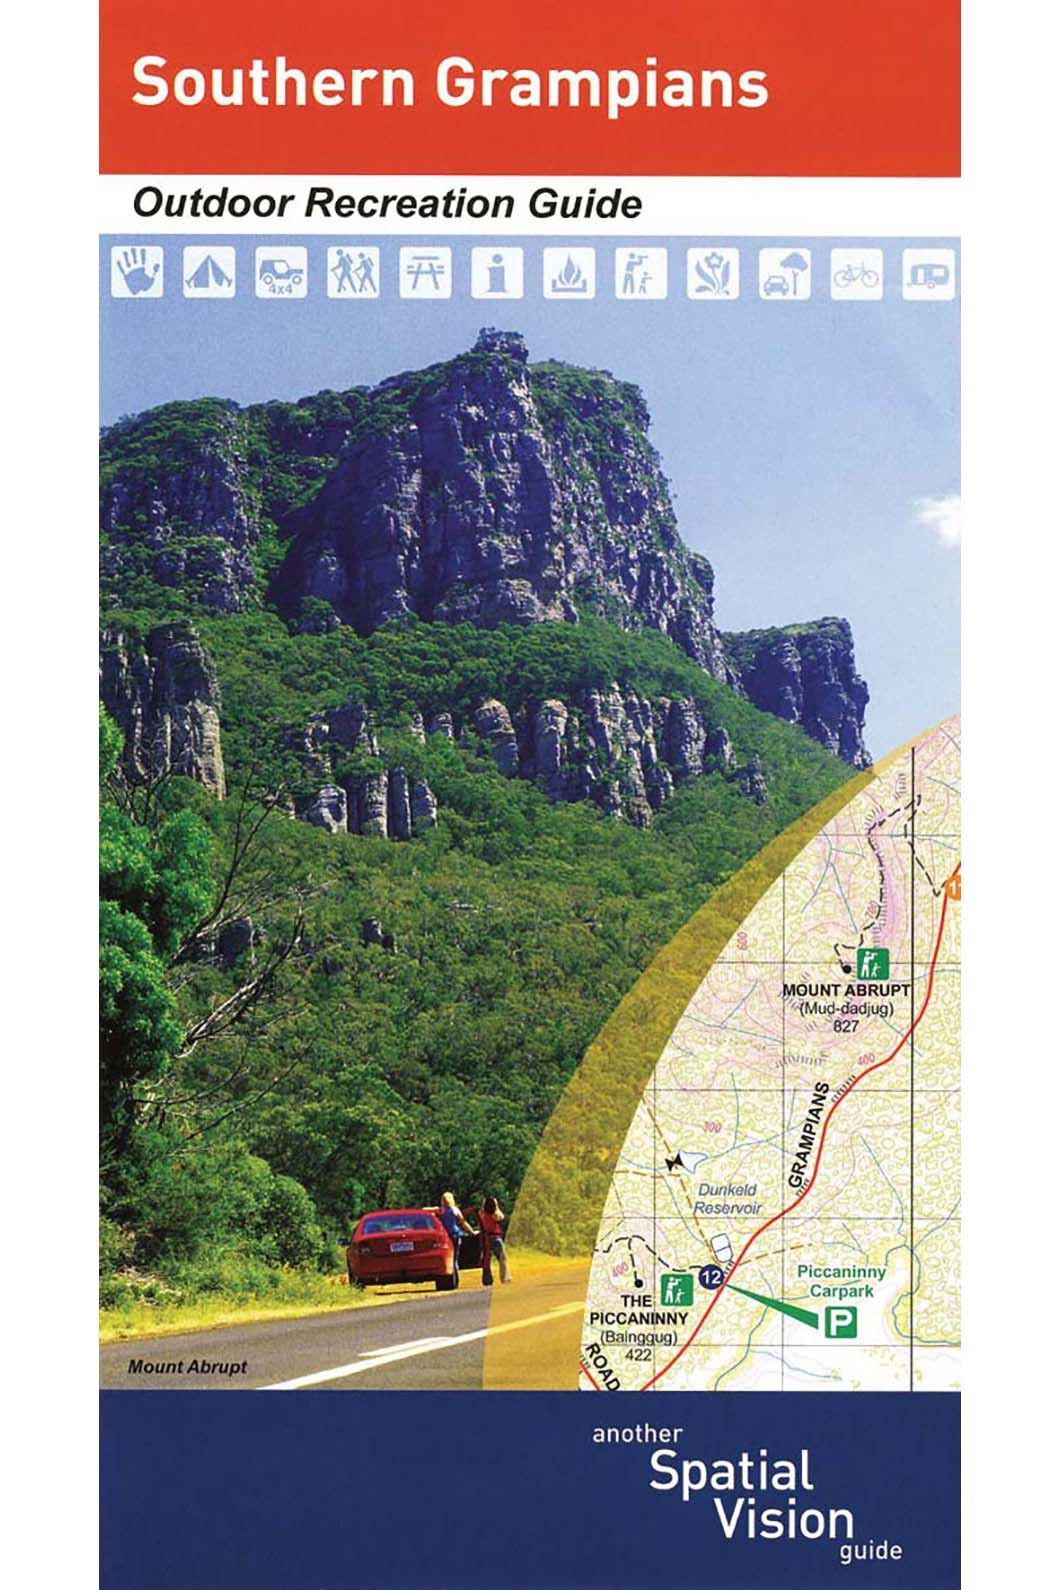 Hema South Grampians Recreation Guide, None, hi-res